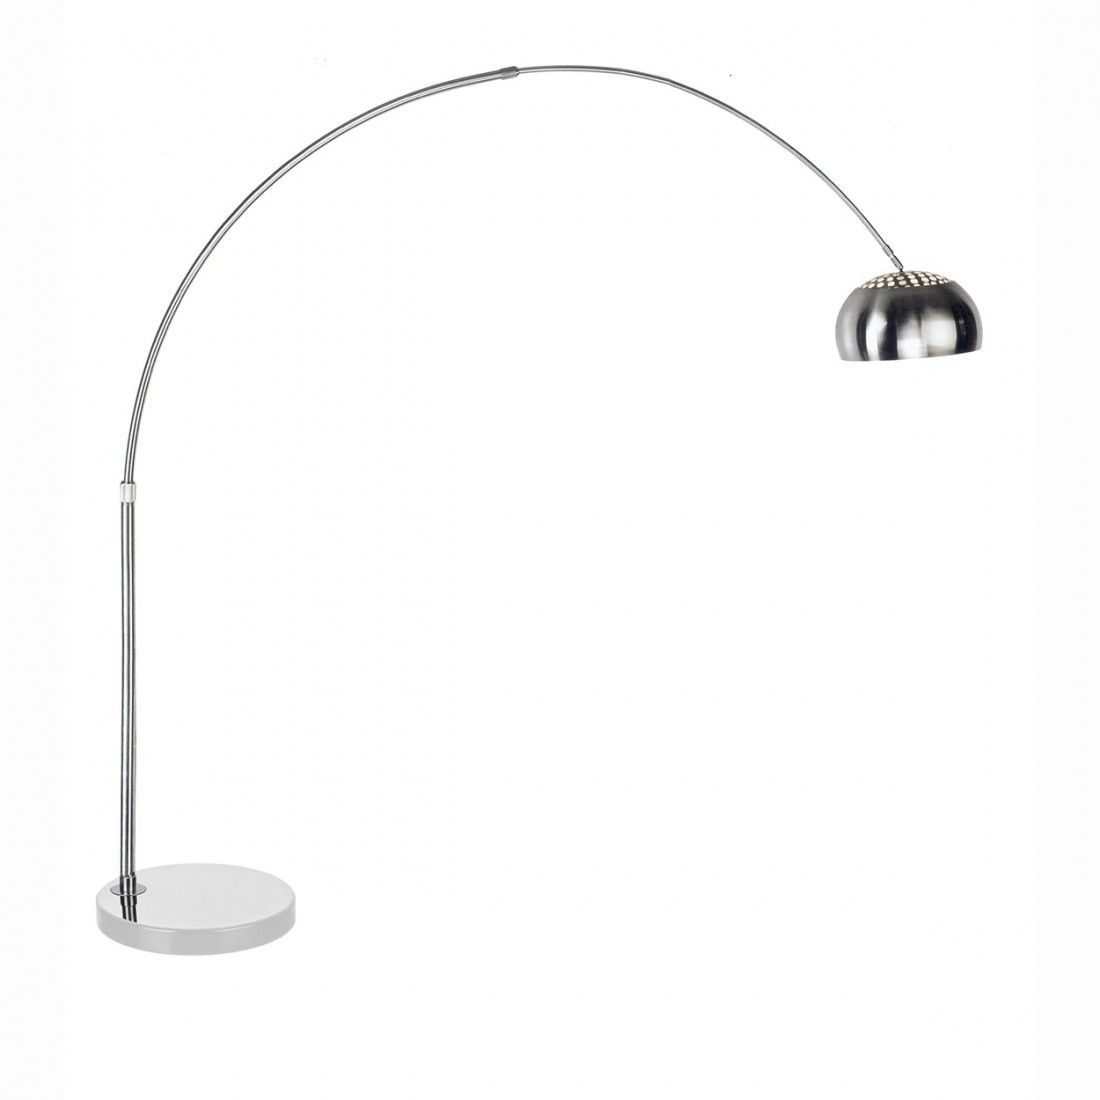 Mid century arc floor lamp round white marble base mid century modern reproduction arco floor lamp round white marble base inspired by achille aloadofball Image collections